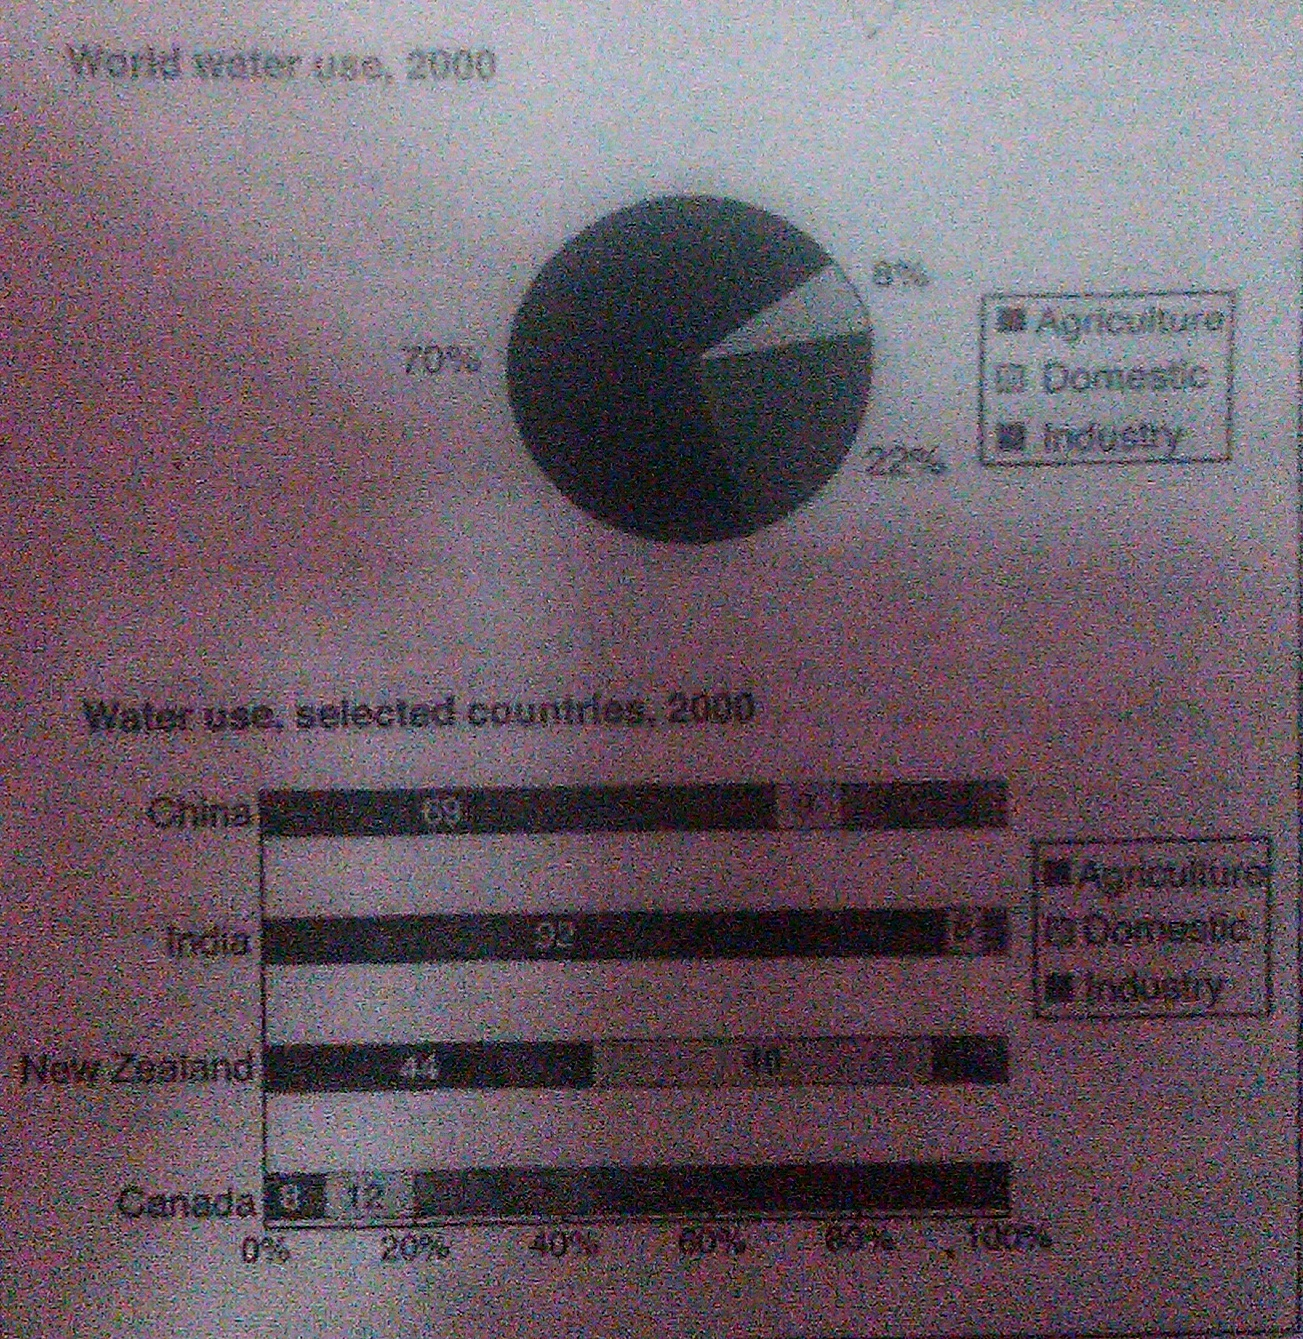 the charts below give information about the way in which water was essay topics the charts below give information about the way in which water was used in different countries in 2000